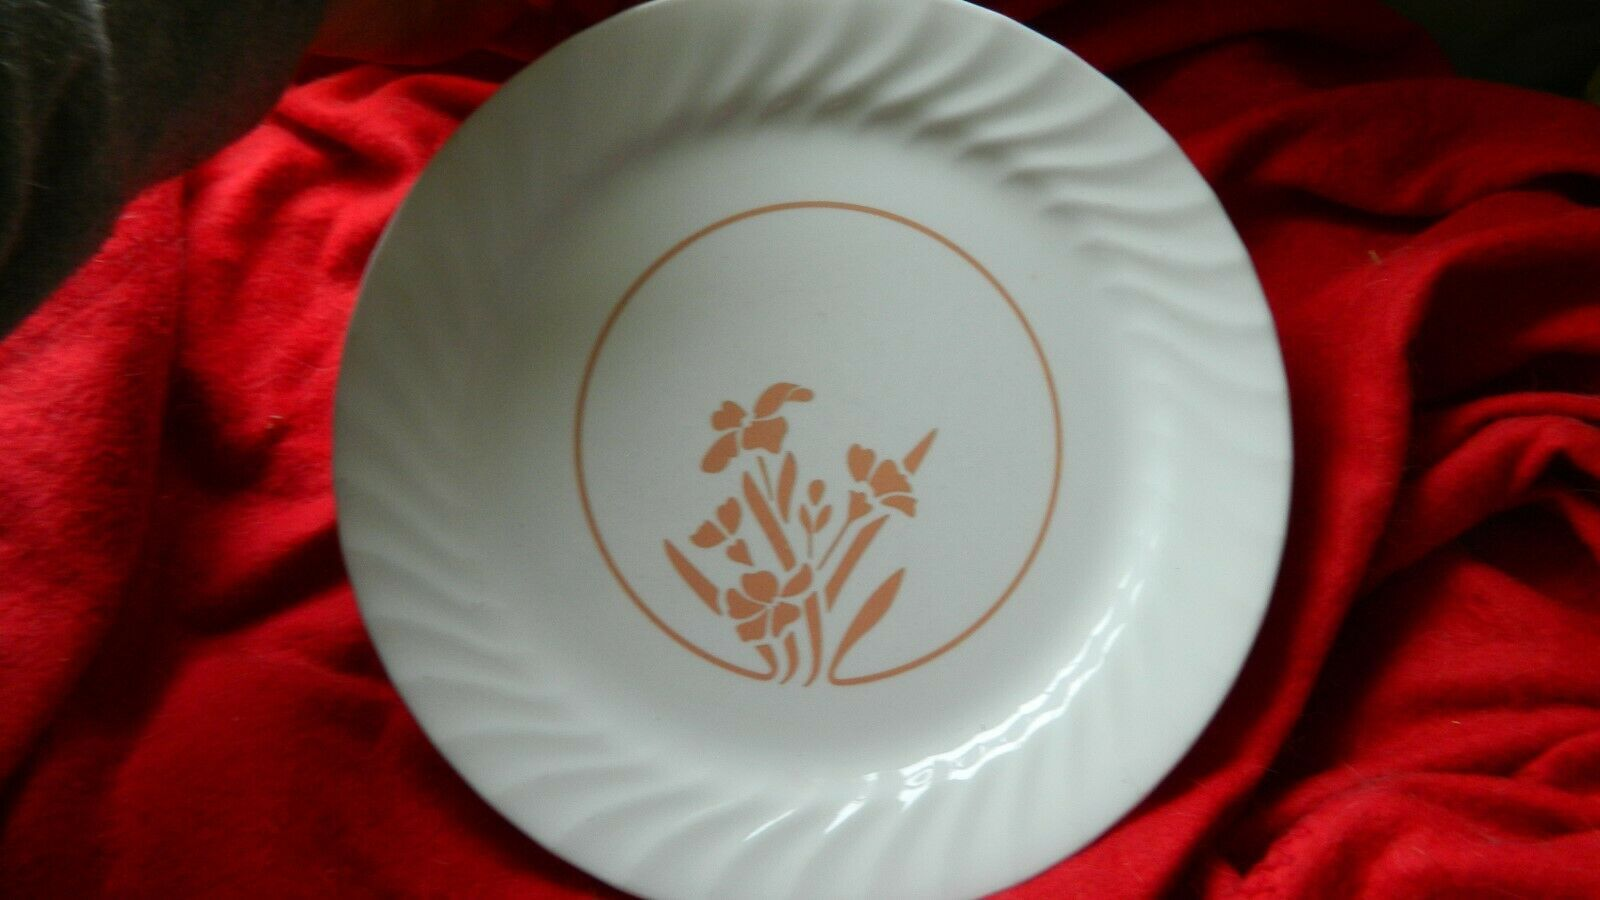 Primary image for CORELLE UNKNOWN PATTERN DINNER PLATES 10.25 IN SET OF FOUR FREE USA SHIPPING